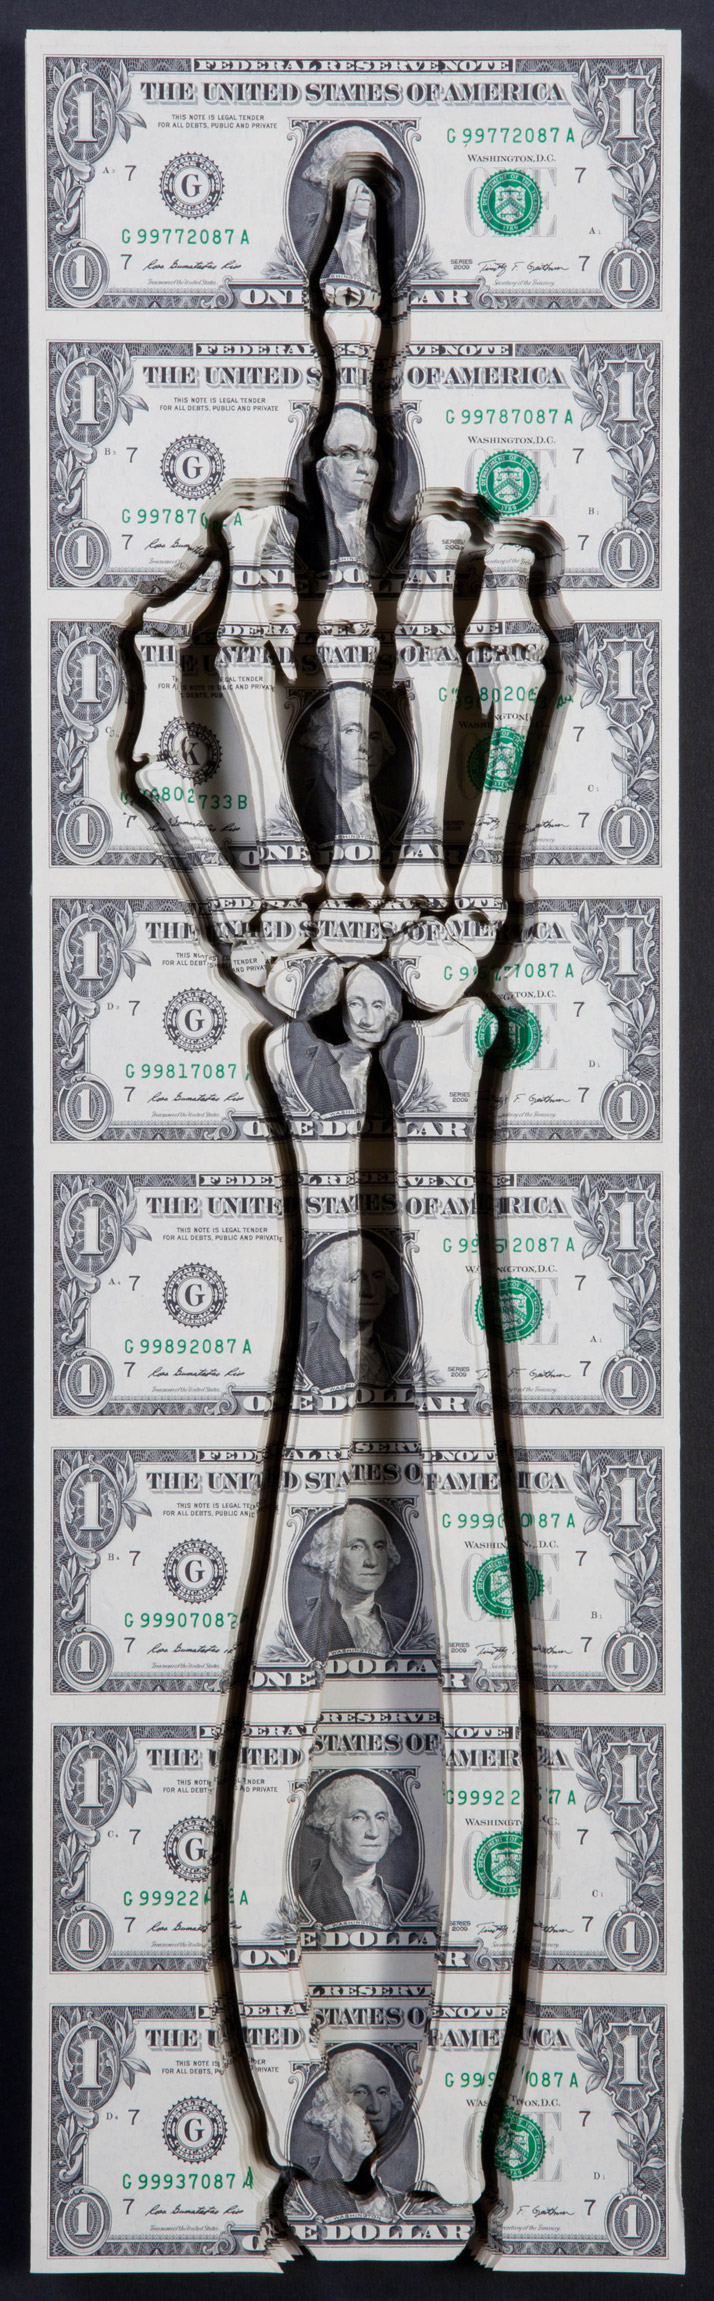 Good  Morning, 2011. By Scott Campbell. Lasered uncut US currency. From the  book 'Forever: The New Tattoo'. Copyright Gestalten 2012.